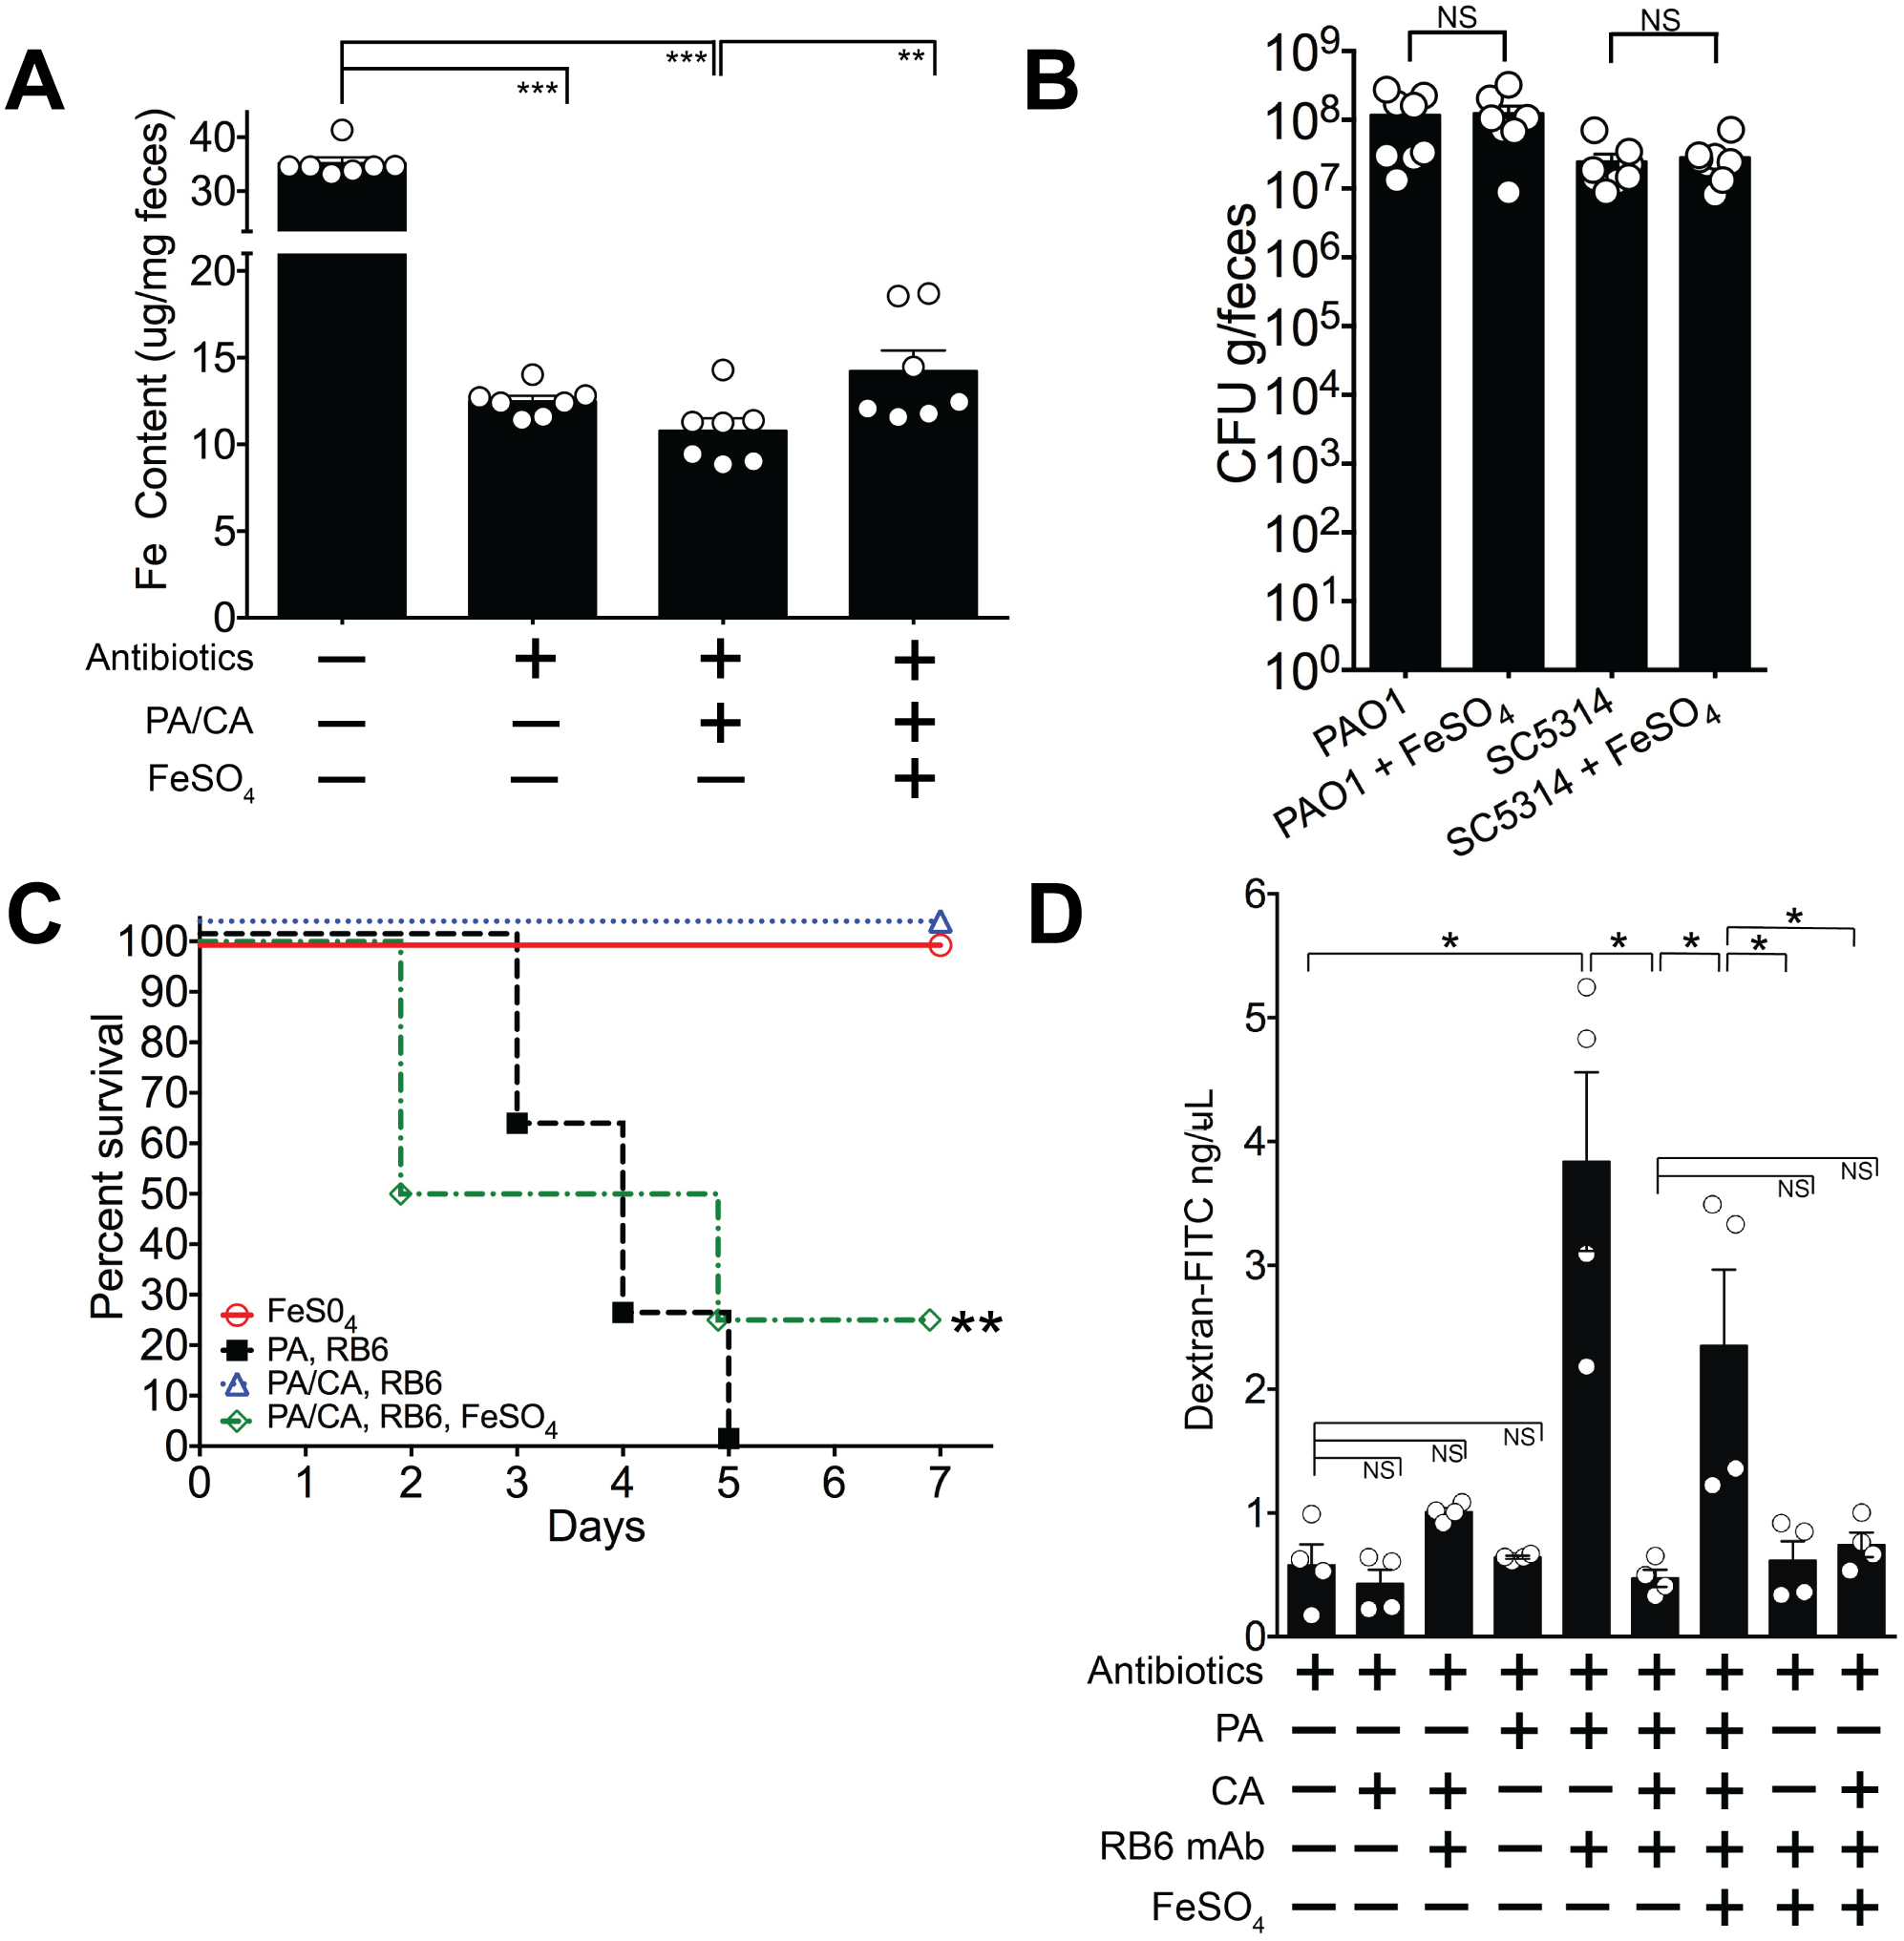 Iron supplementation restores <i>P</i>. <i>aeruginosa</i> virulence in <i>P</i>. <i>aeruginosa</i> and <i>C</i>. <i>albicans</i> colonized mice.